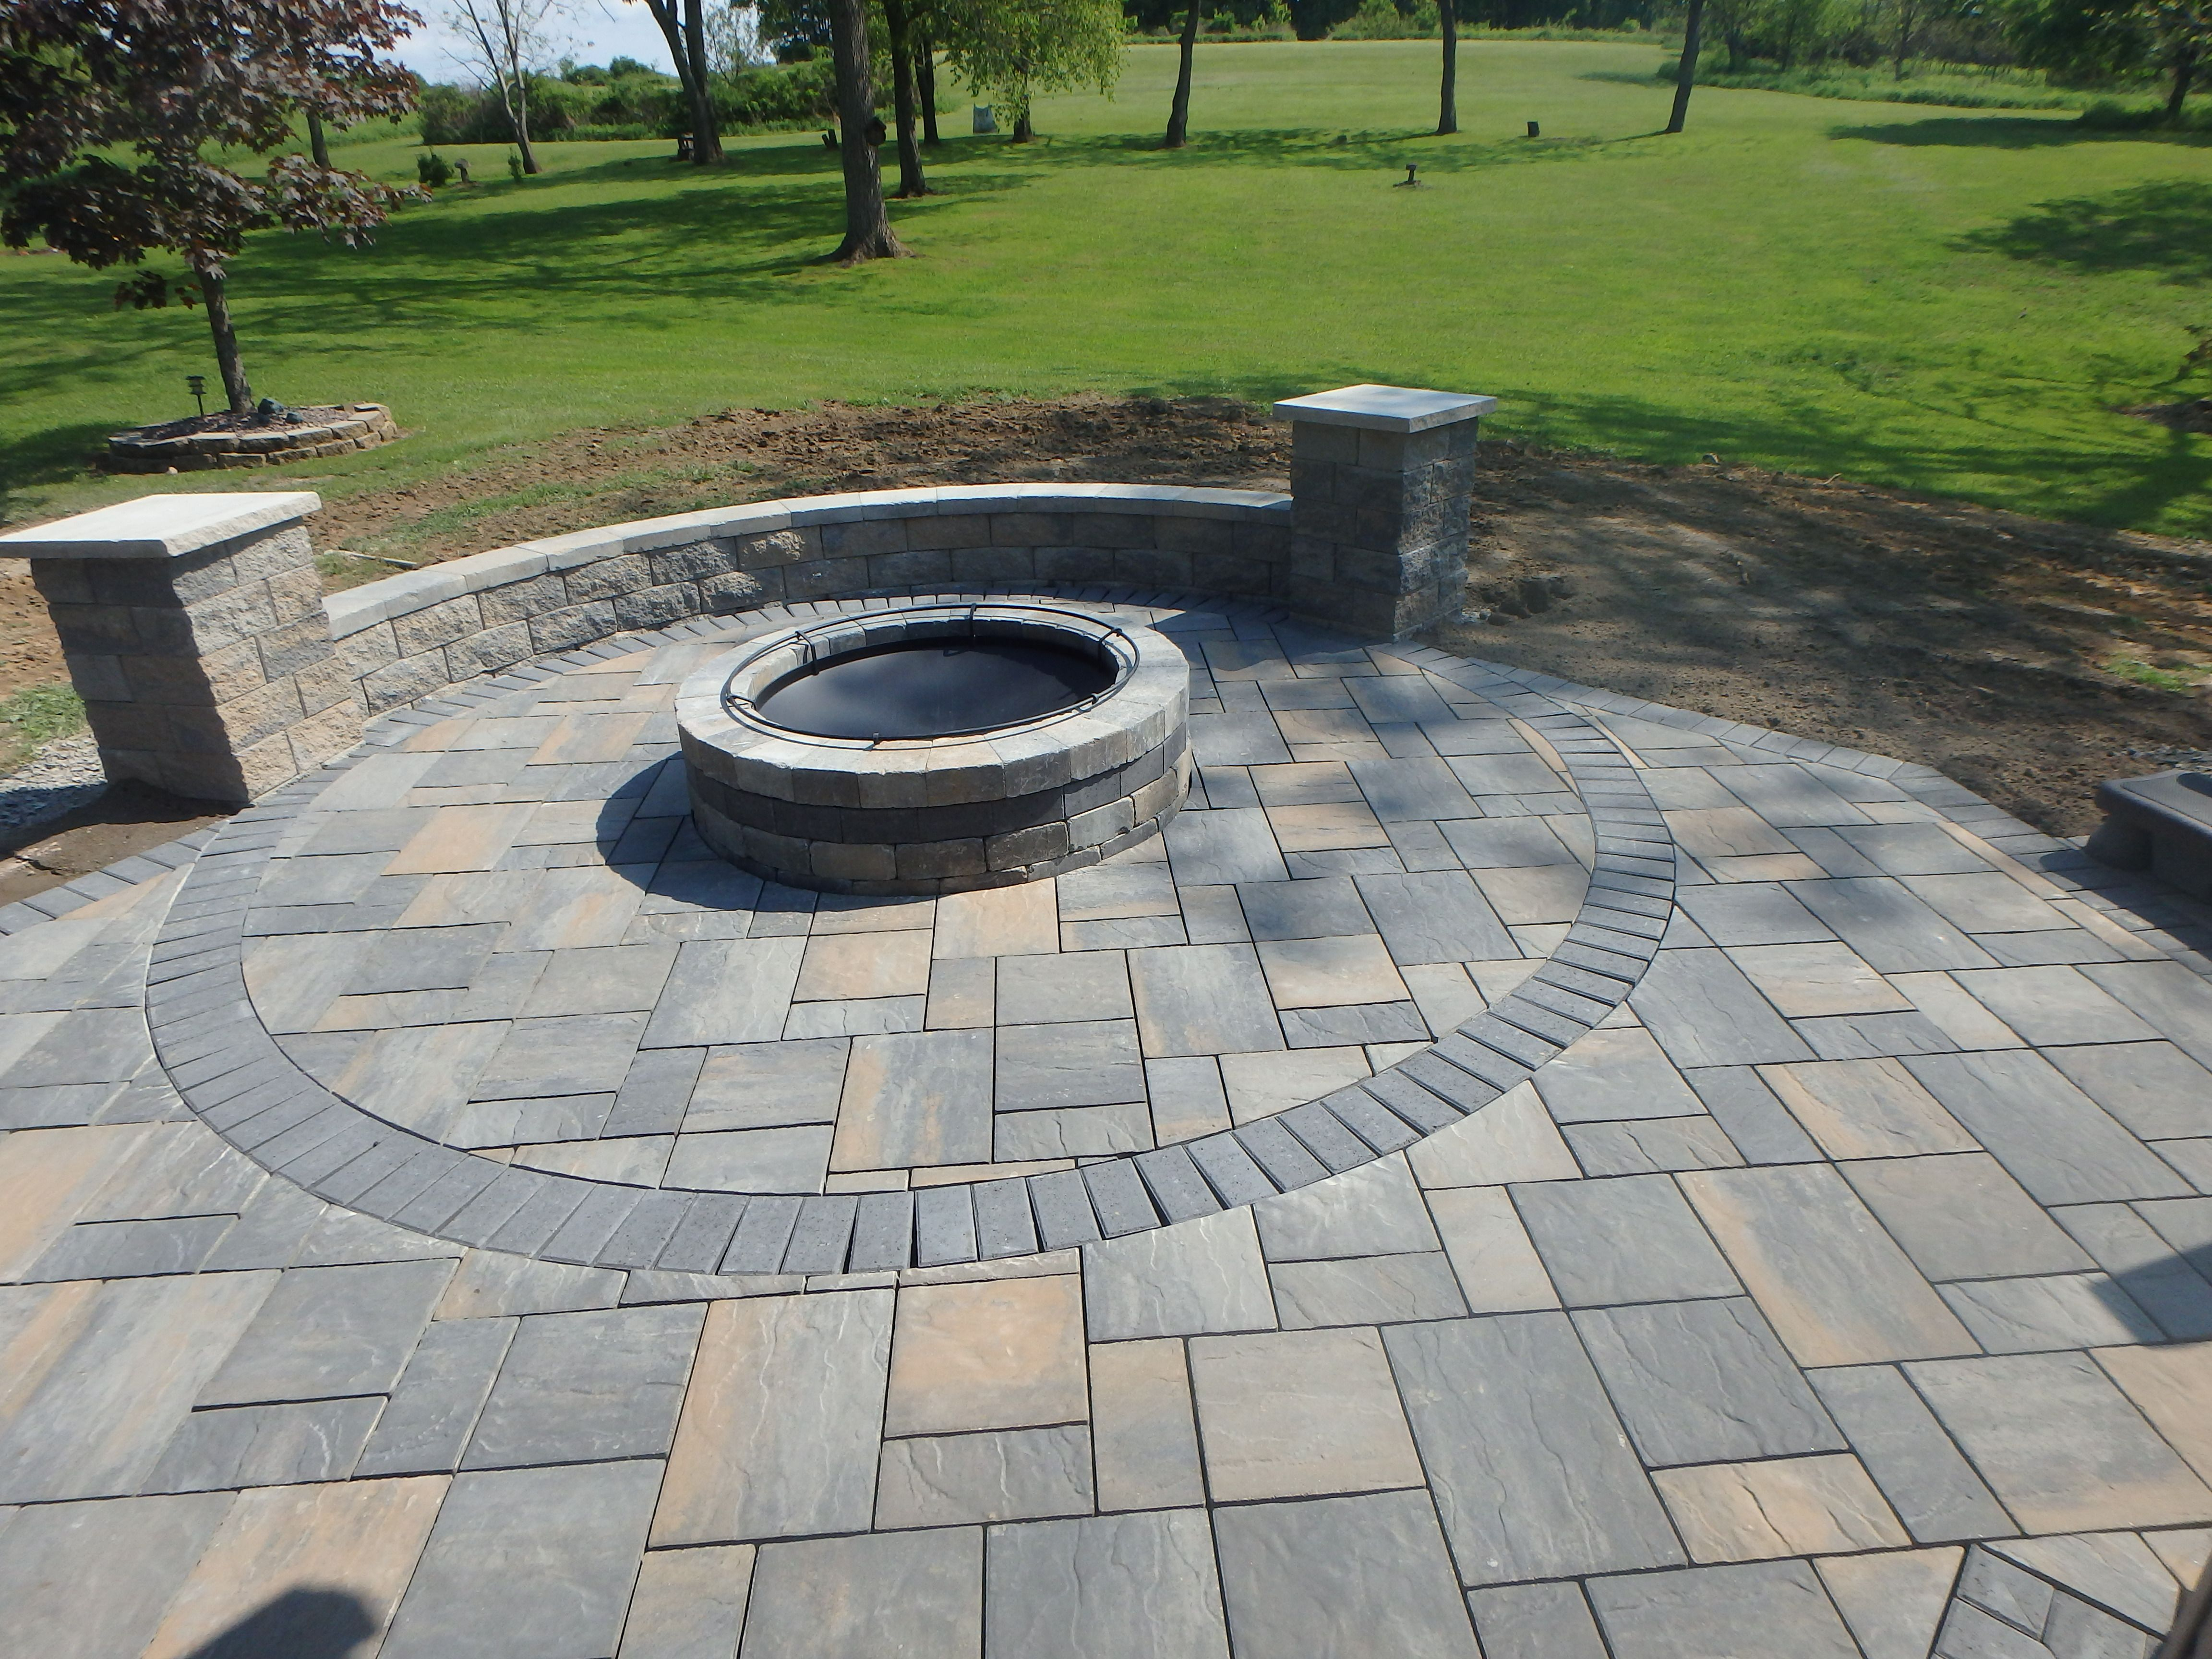 Paver Patio With Charcoal Circle Inlay And Matching